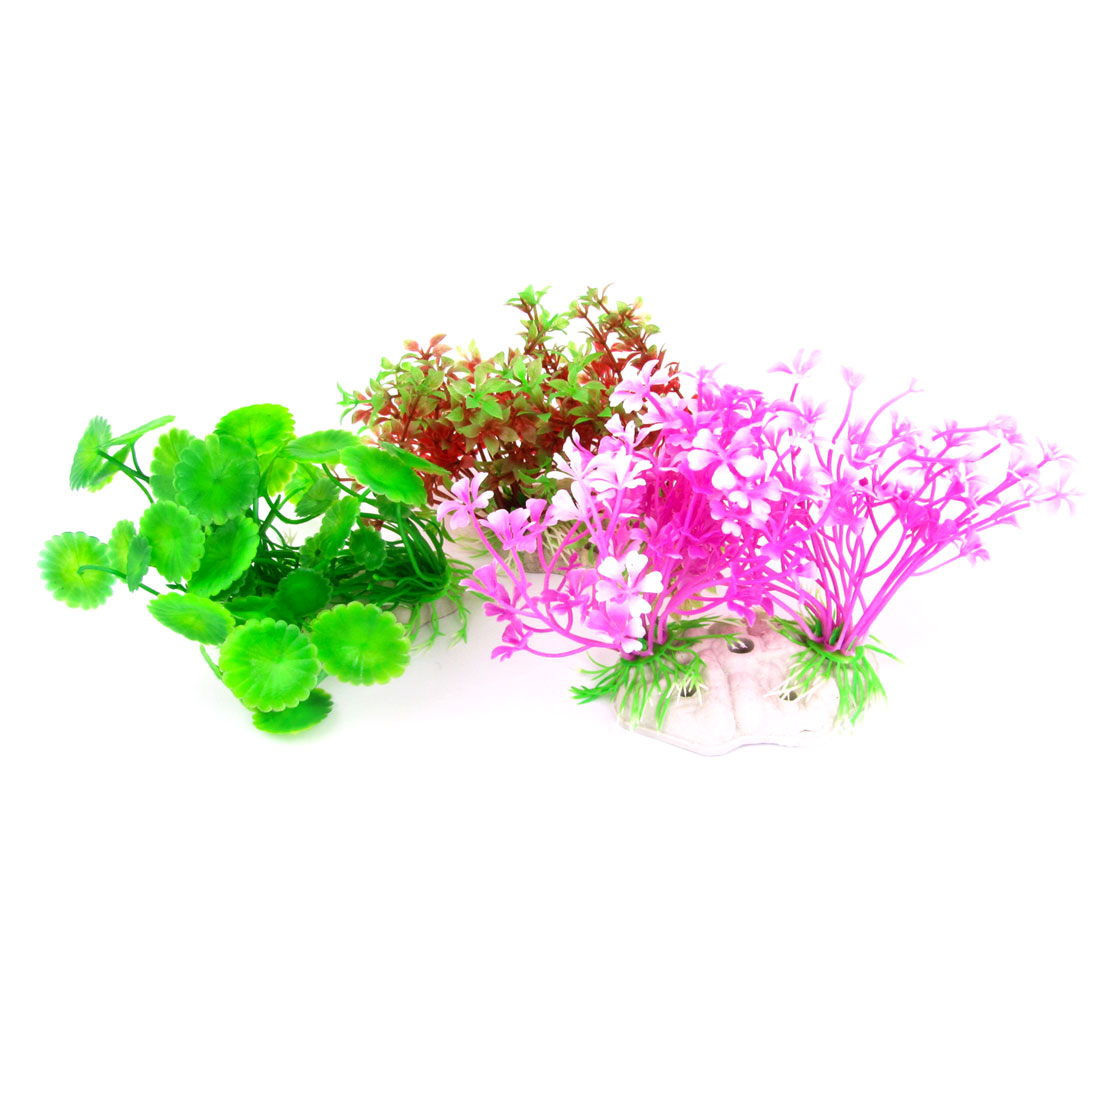 "3 Pcs Purple Red 6.7"" Wide Artificial Plastic Plant Grass for Aquarium"